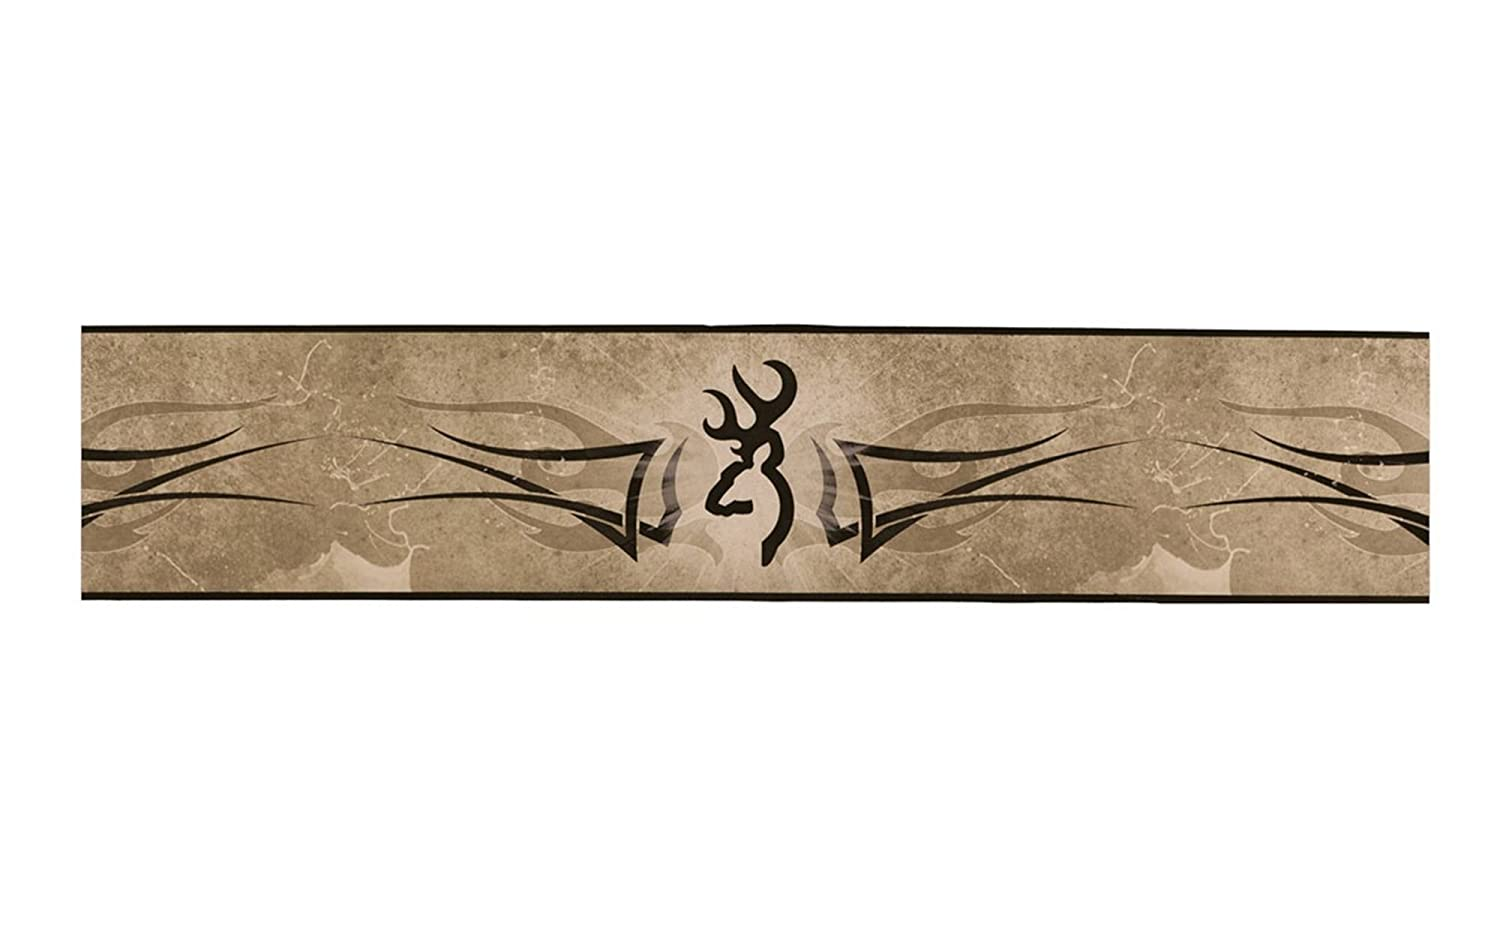 Amazon.com: Licensed Browning Buckmark Abstract Wallpaper Border Bed ...